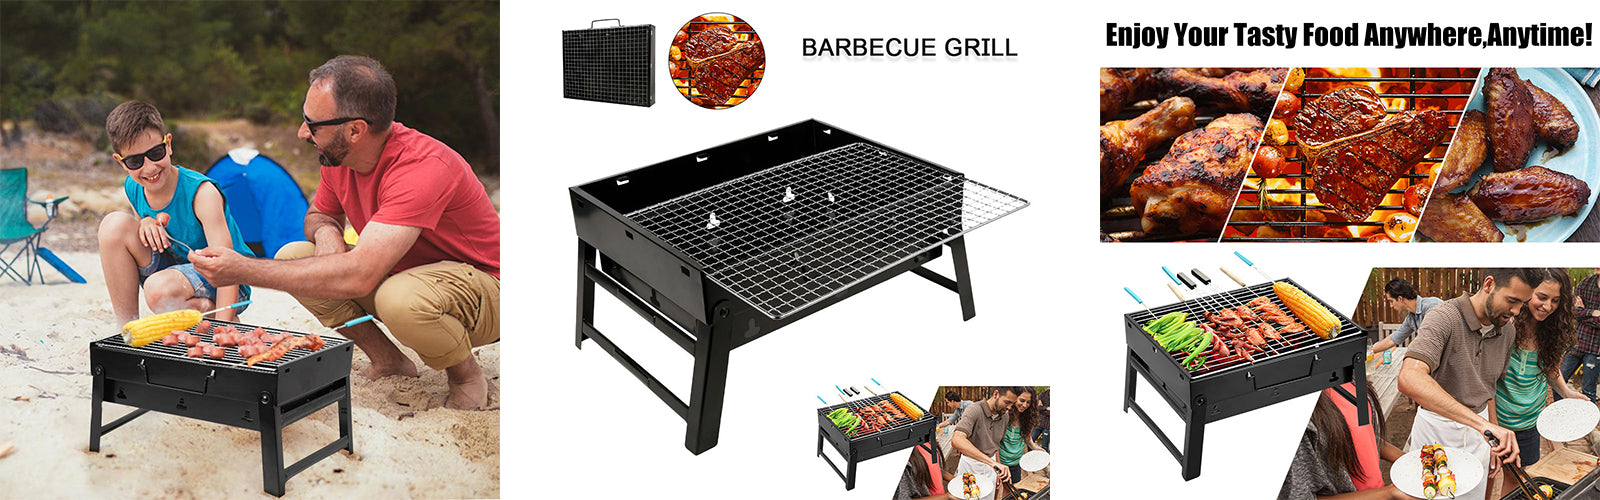 Barbecue portable à charbon de bois